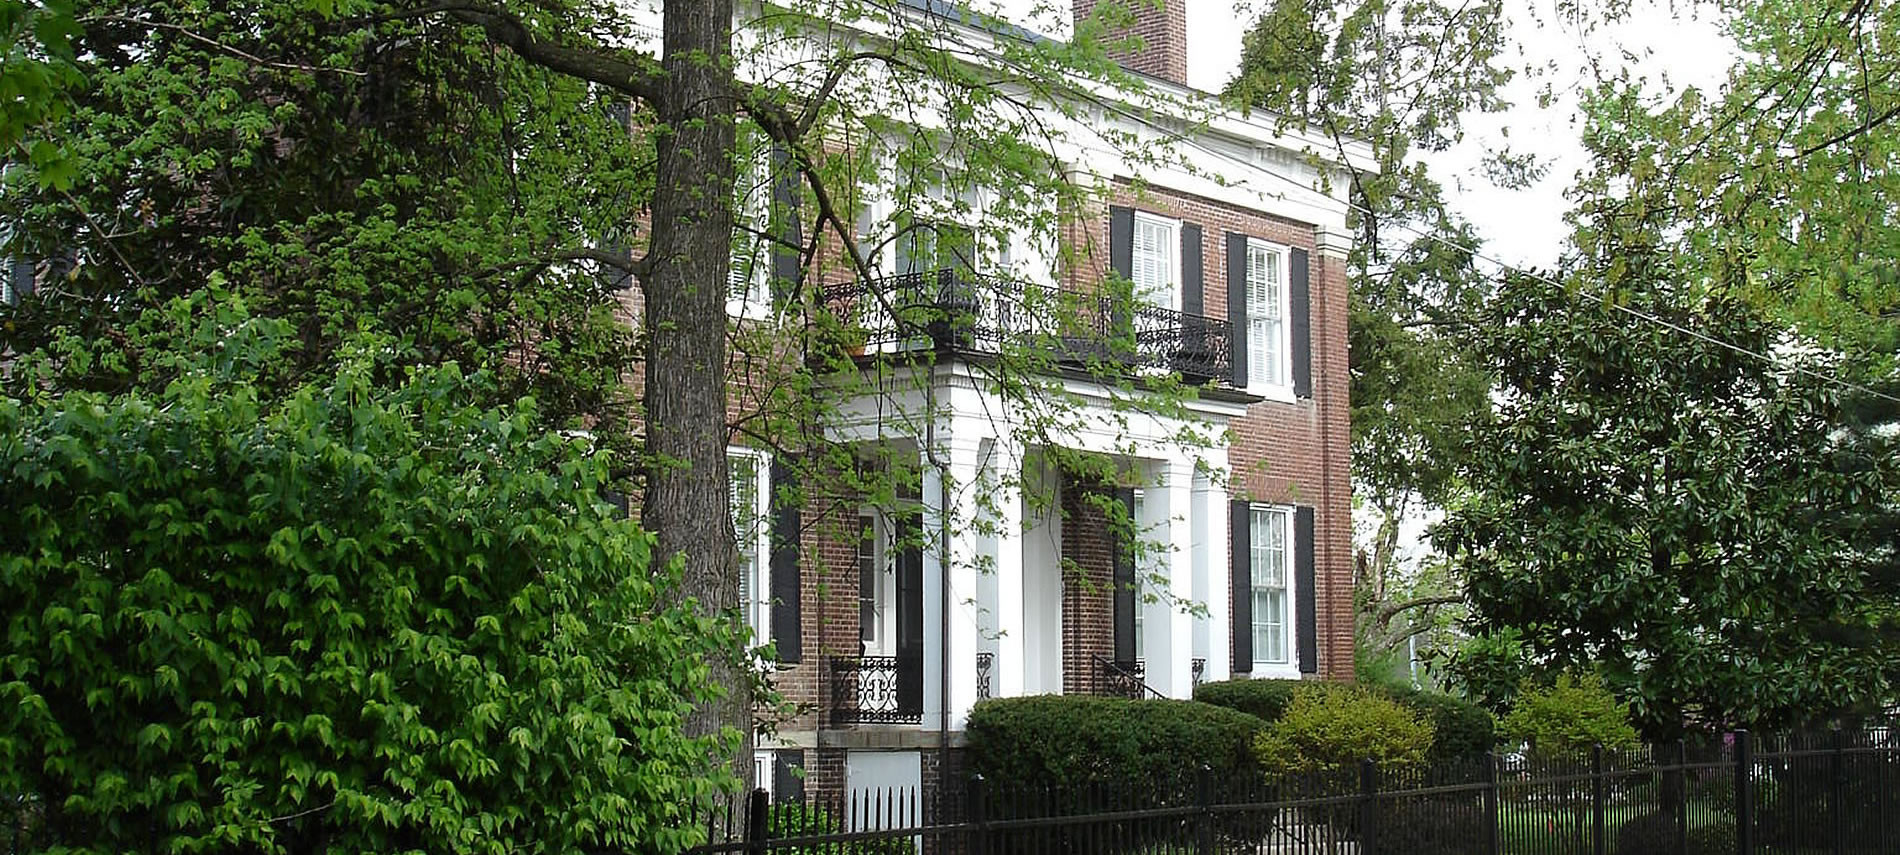 Bourbon Manor B&B has a brick facade with black shutters, white portico entrance with metal railing balcony and mature trees